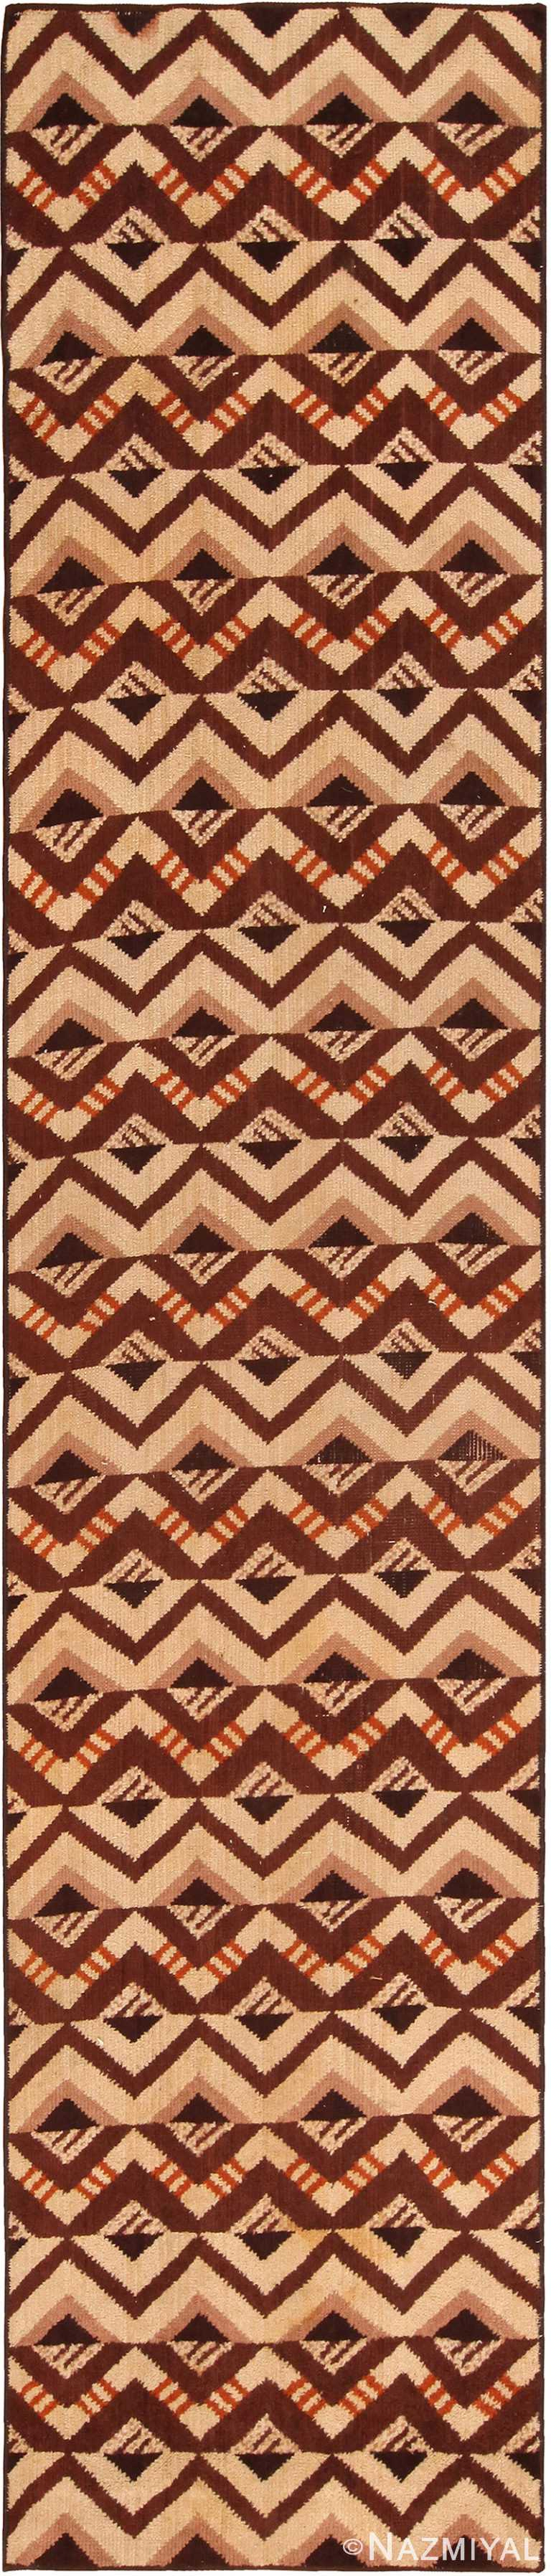 Geometric Vintage French Art Deco Runner Rug 70968 by Nazmiyal Antique Rugs